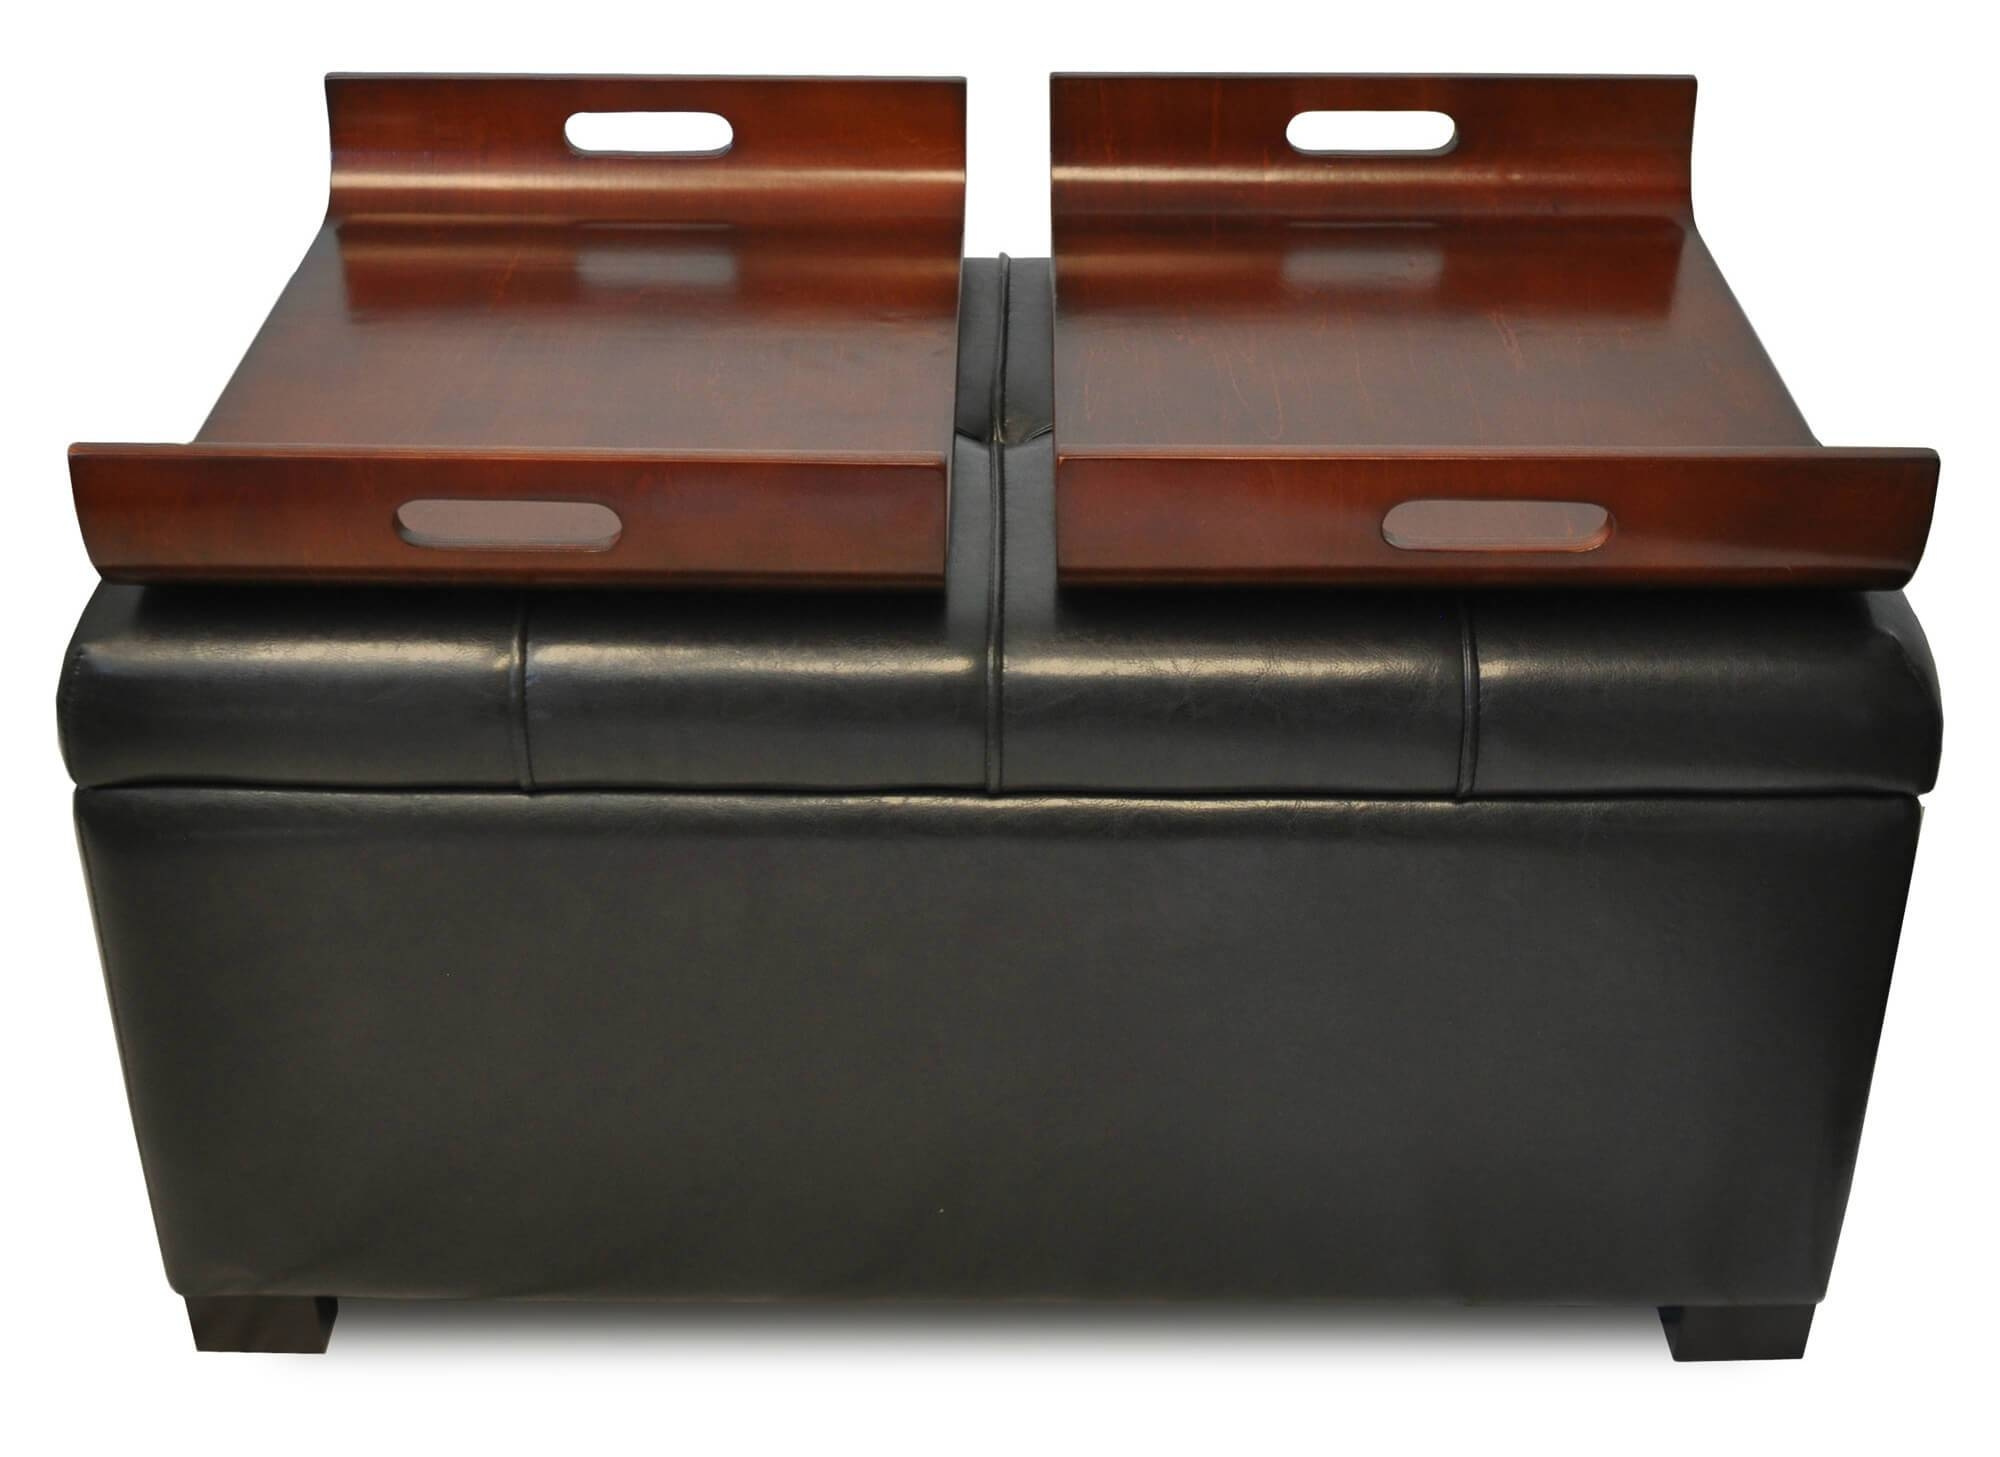 36 Top Brown Leather Ottoman Coffee Tables In Brown Leather Ottoman Coffee Tables (View 24 of 30)